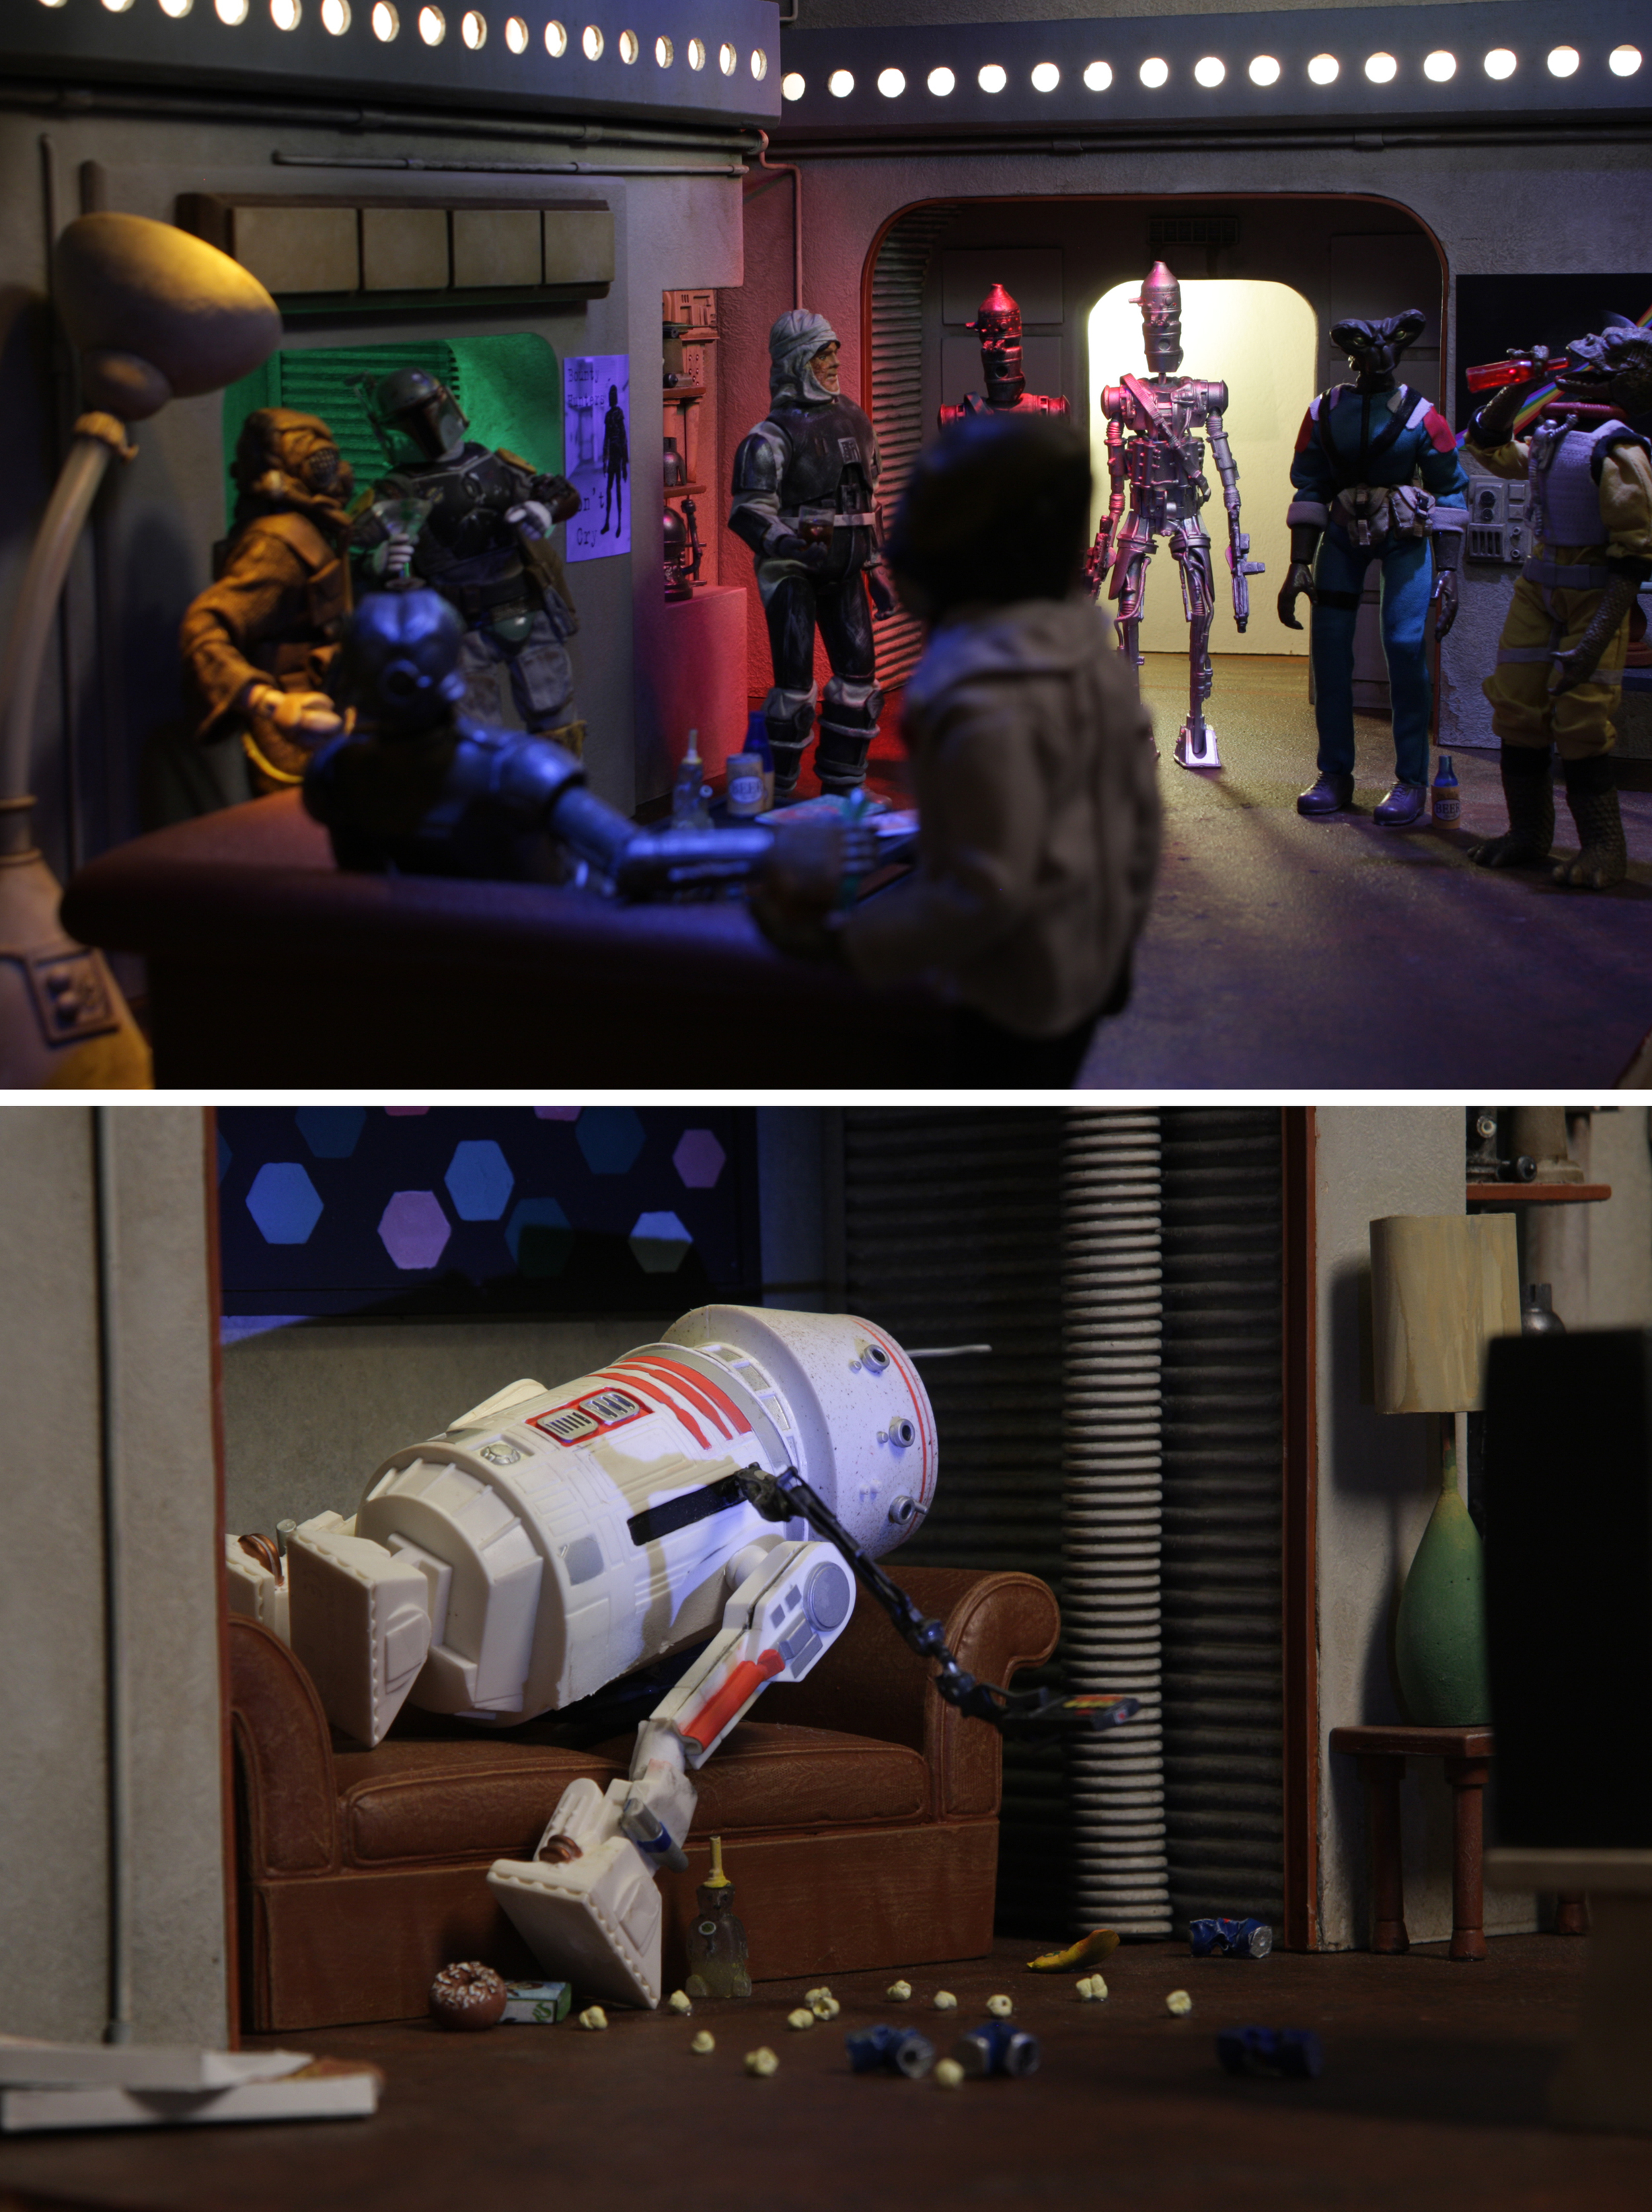 Robot Chicken Star Wars 3 Image 64.jpg